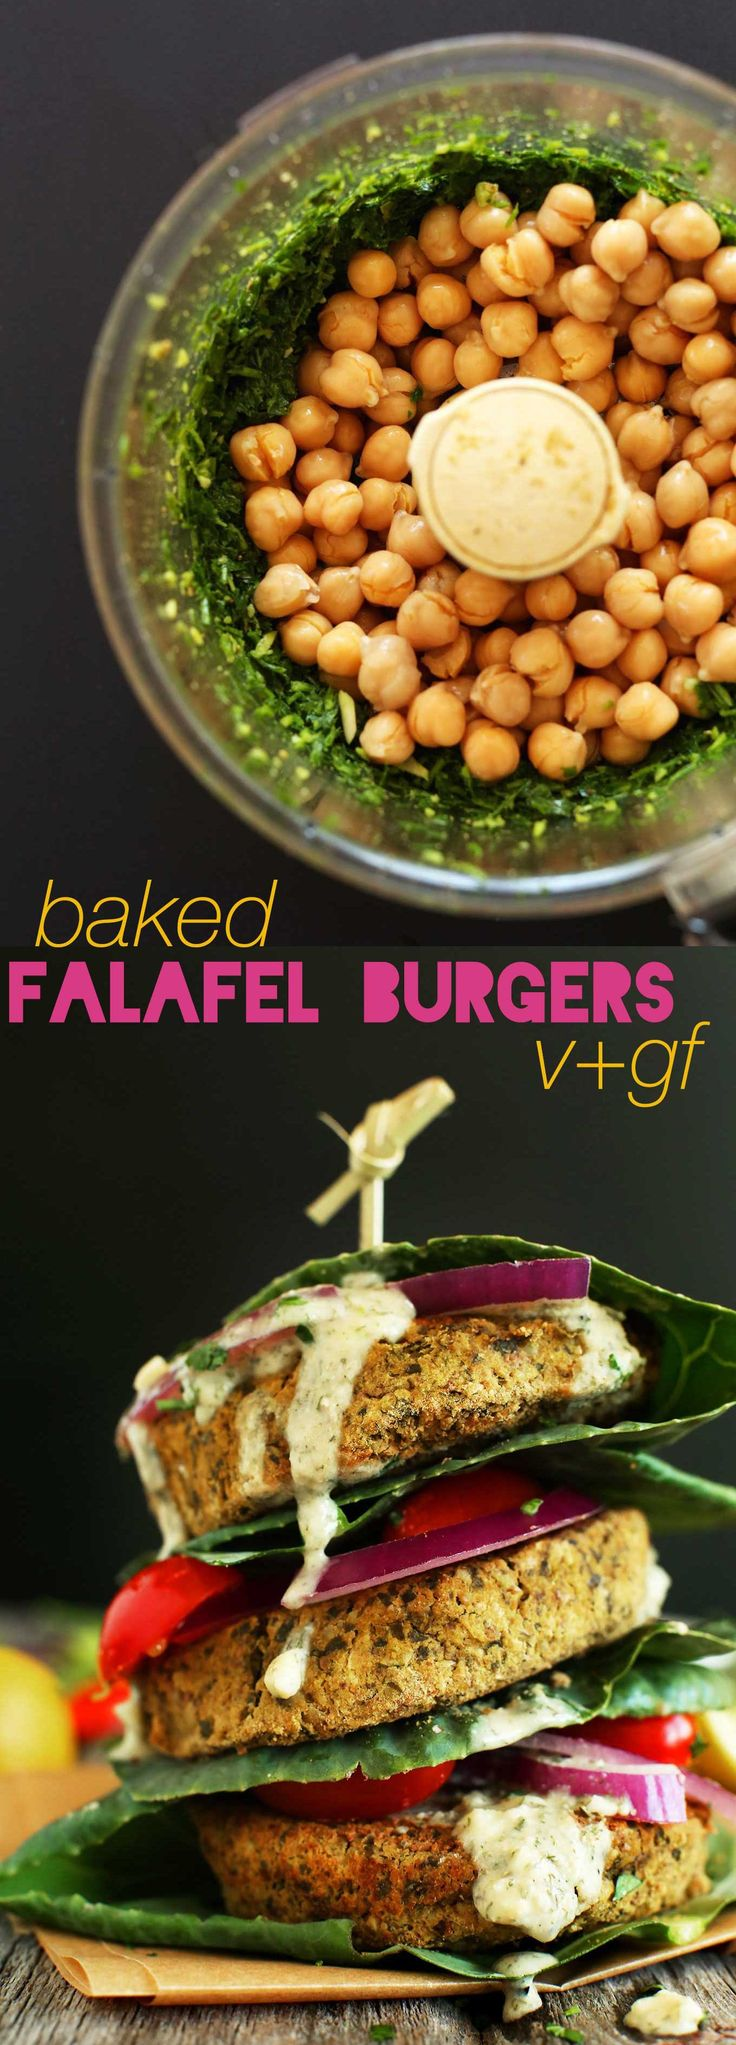 Falafel burgers - 10g of protein and 5g fiber in EACH, make this burger super healthy!